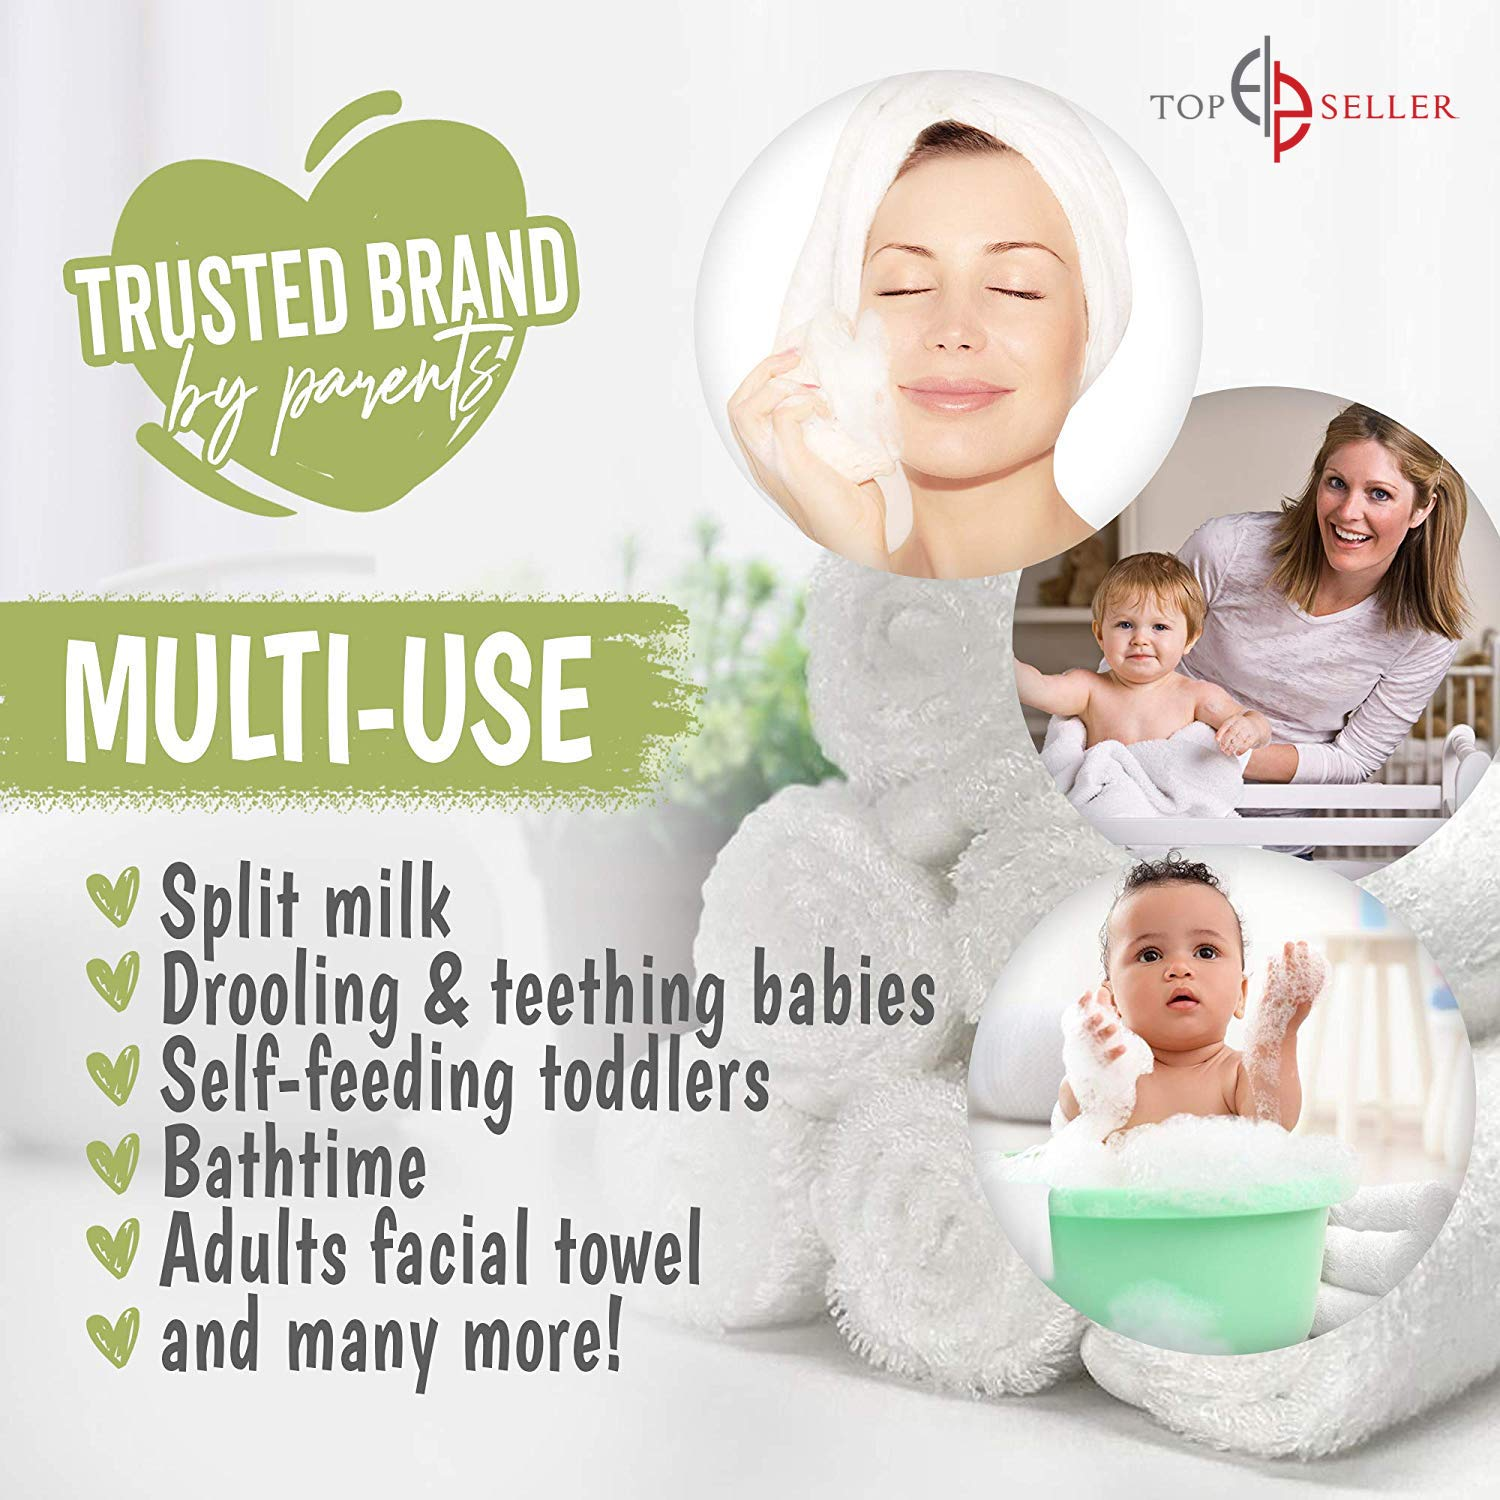 Multi 2 Layers of Ultra Luxury Soft Absorbent Bamboo Towel Natural Reusable Baby Wipes for Sensitive Skin Newborn Bath /& Face Towel Worlds Best Baby Bamboo Washcloths Towels /& Laundry Bag Set